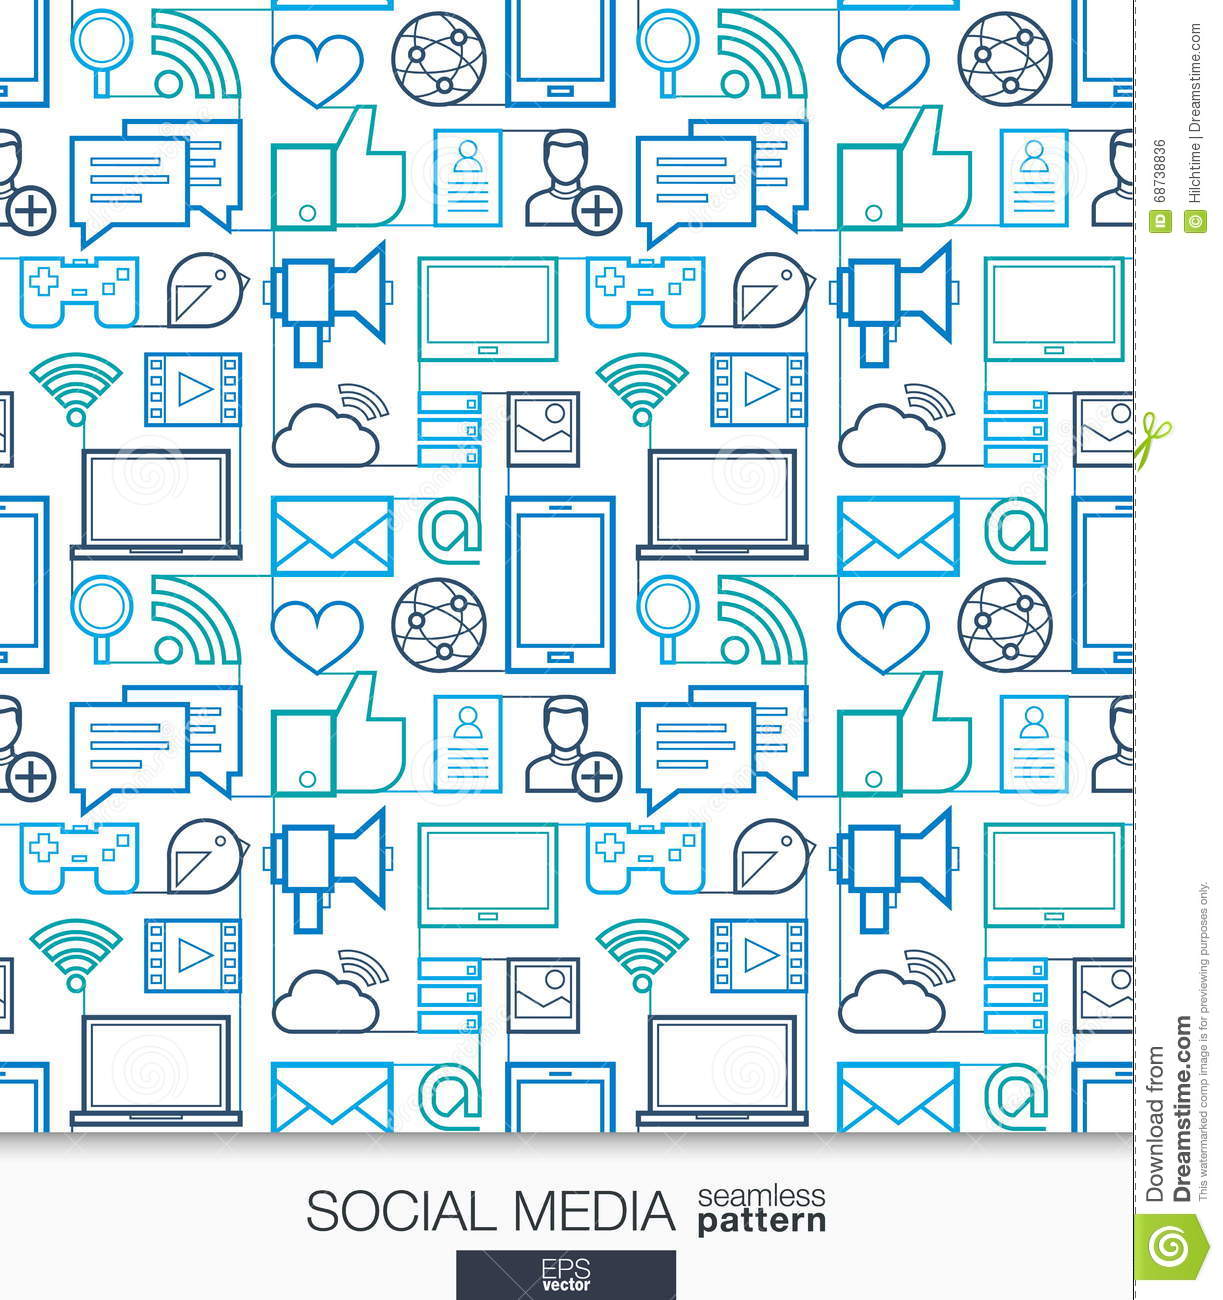 Social Media Wallpaper. Network Communication Seamless